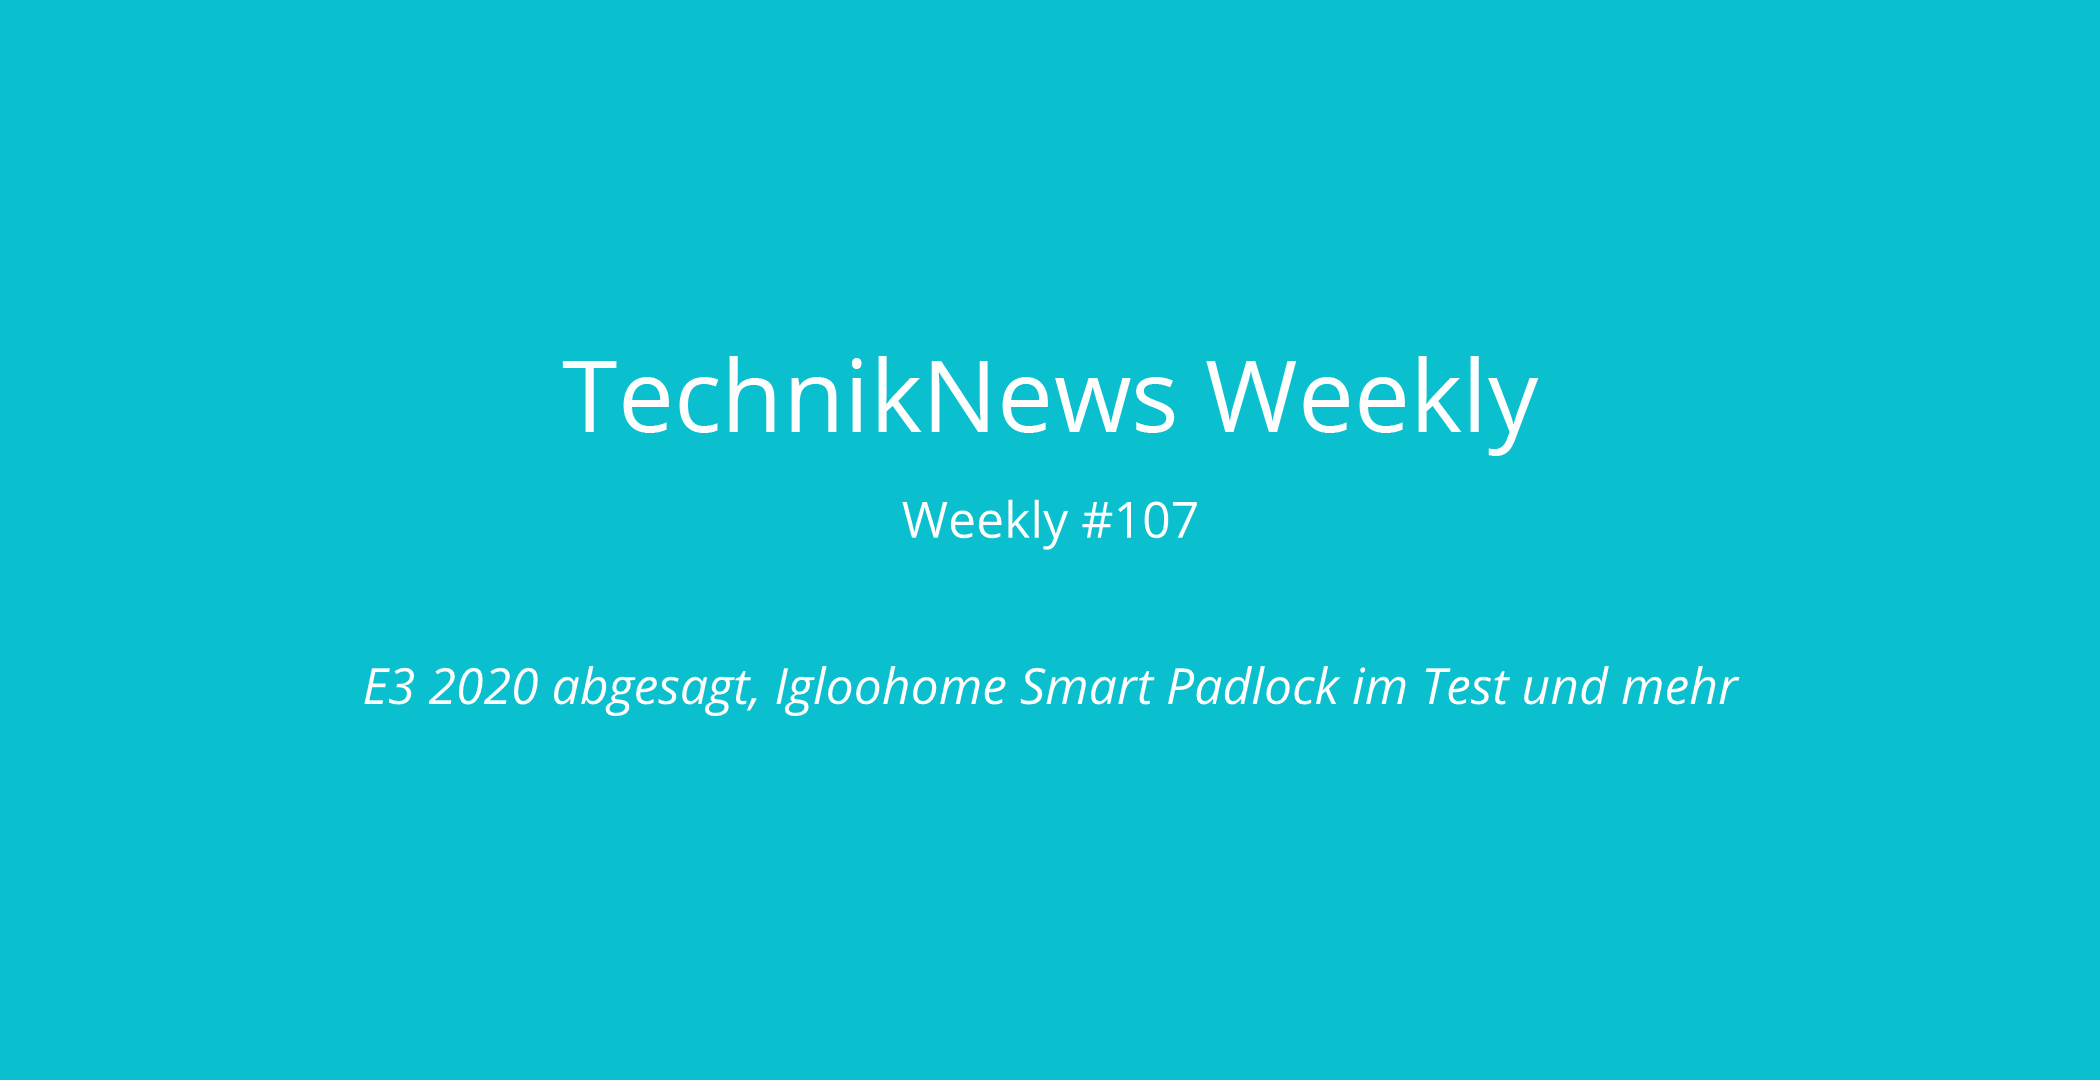 TechnikNews Weekly 107